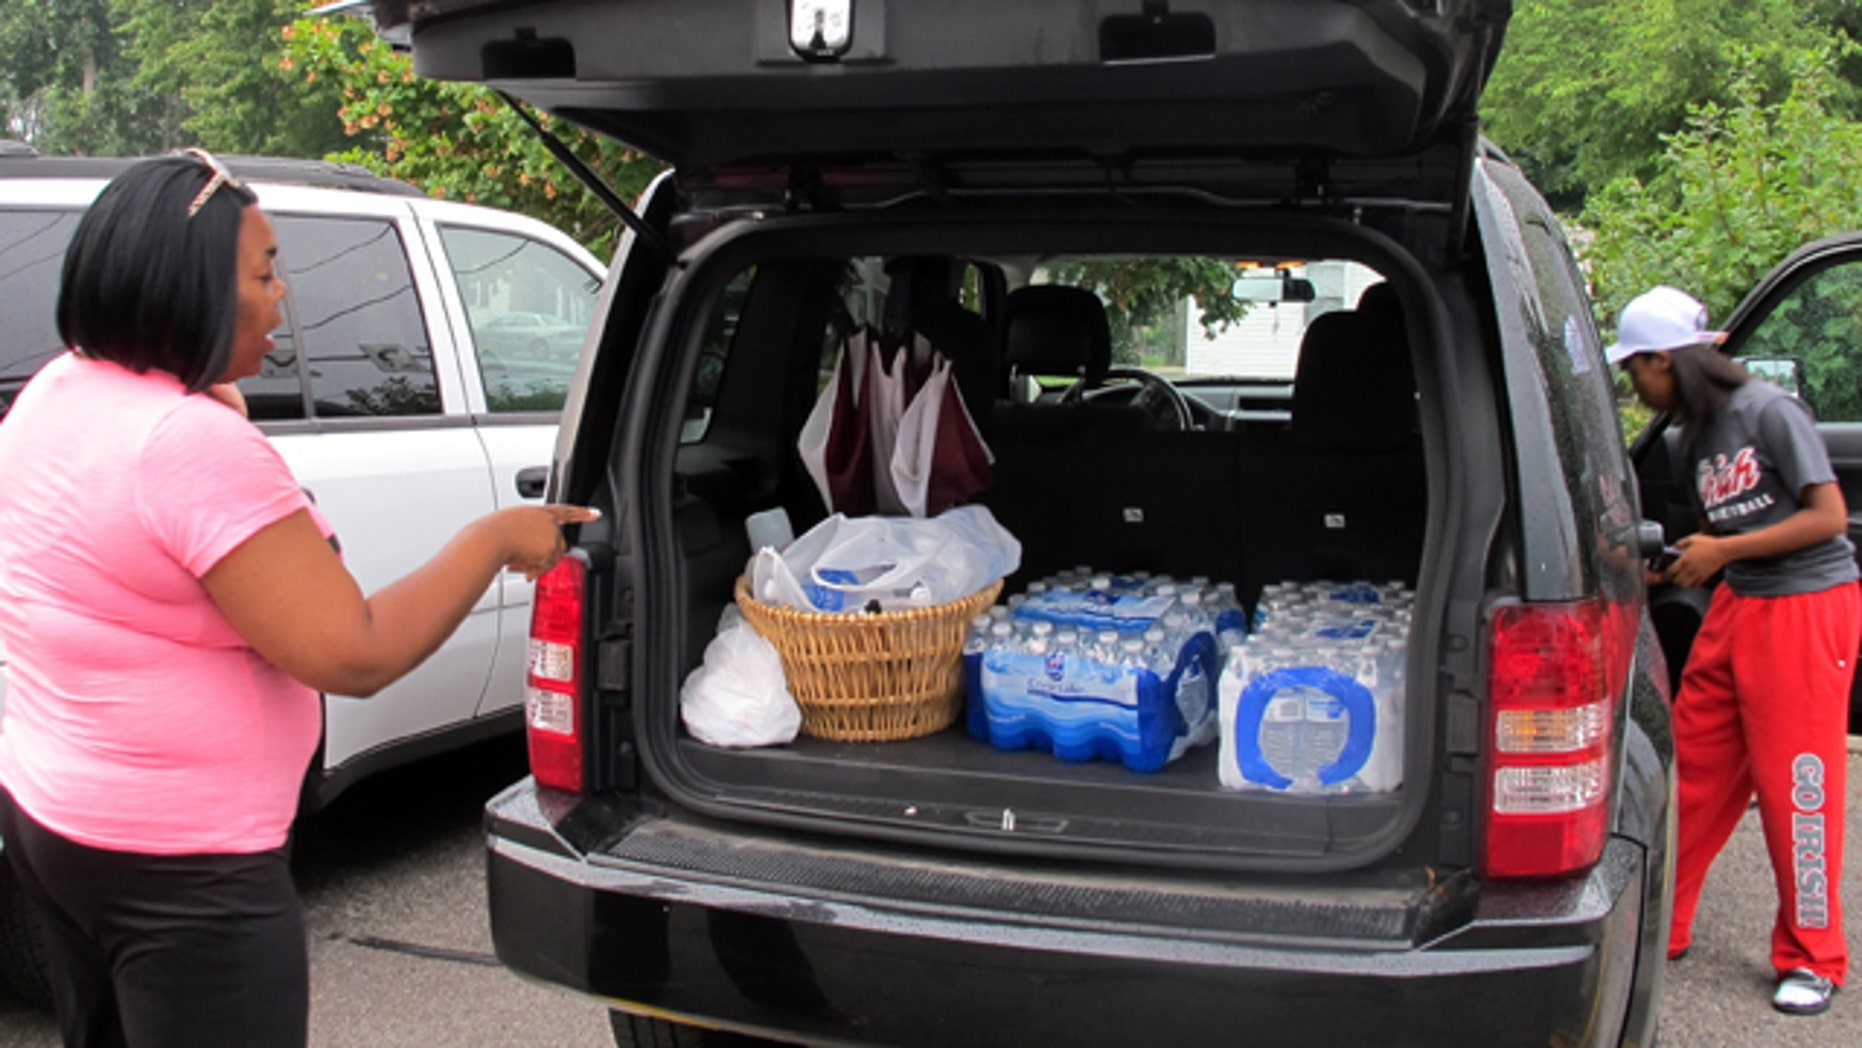 August 2, 2014: Aundrea Simmons stands next to her minivan with cases of bottled water she bought after Toledo warned residents not to use its water. About 400,000 people in and around Ohio's fourth-largest city were warned not to drink or use its water after tests revealed the presence of a toxin possibly from algae on Lake Erie. (AP Photo/John Seewer)